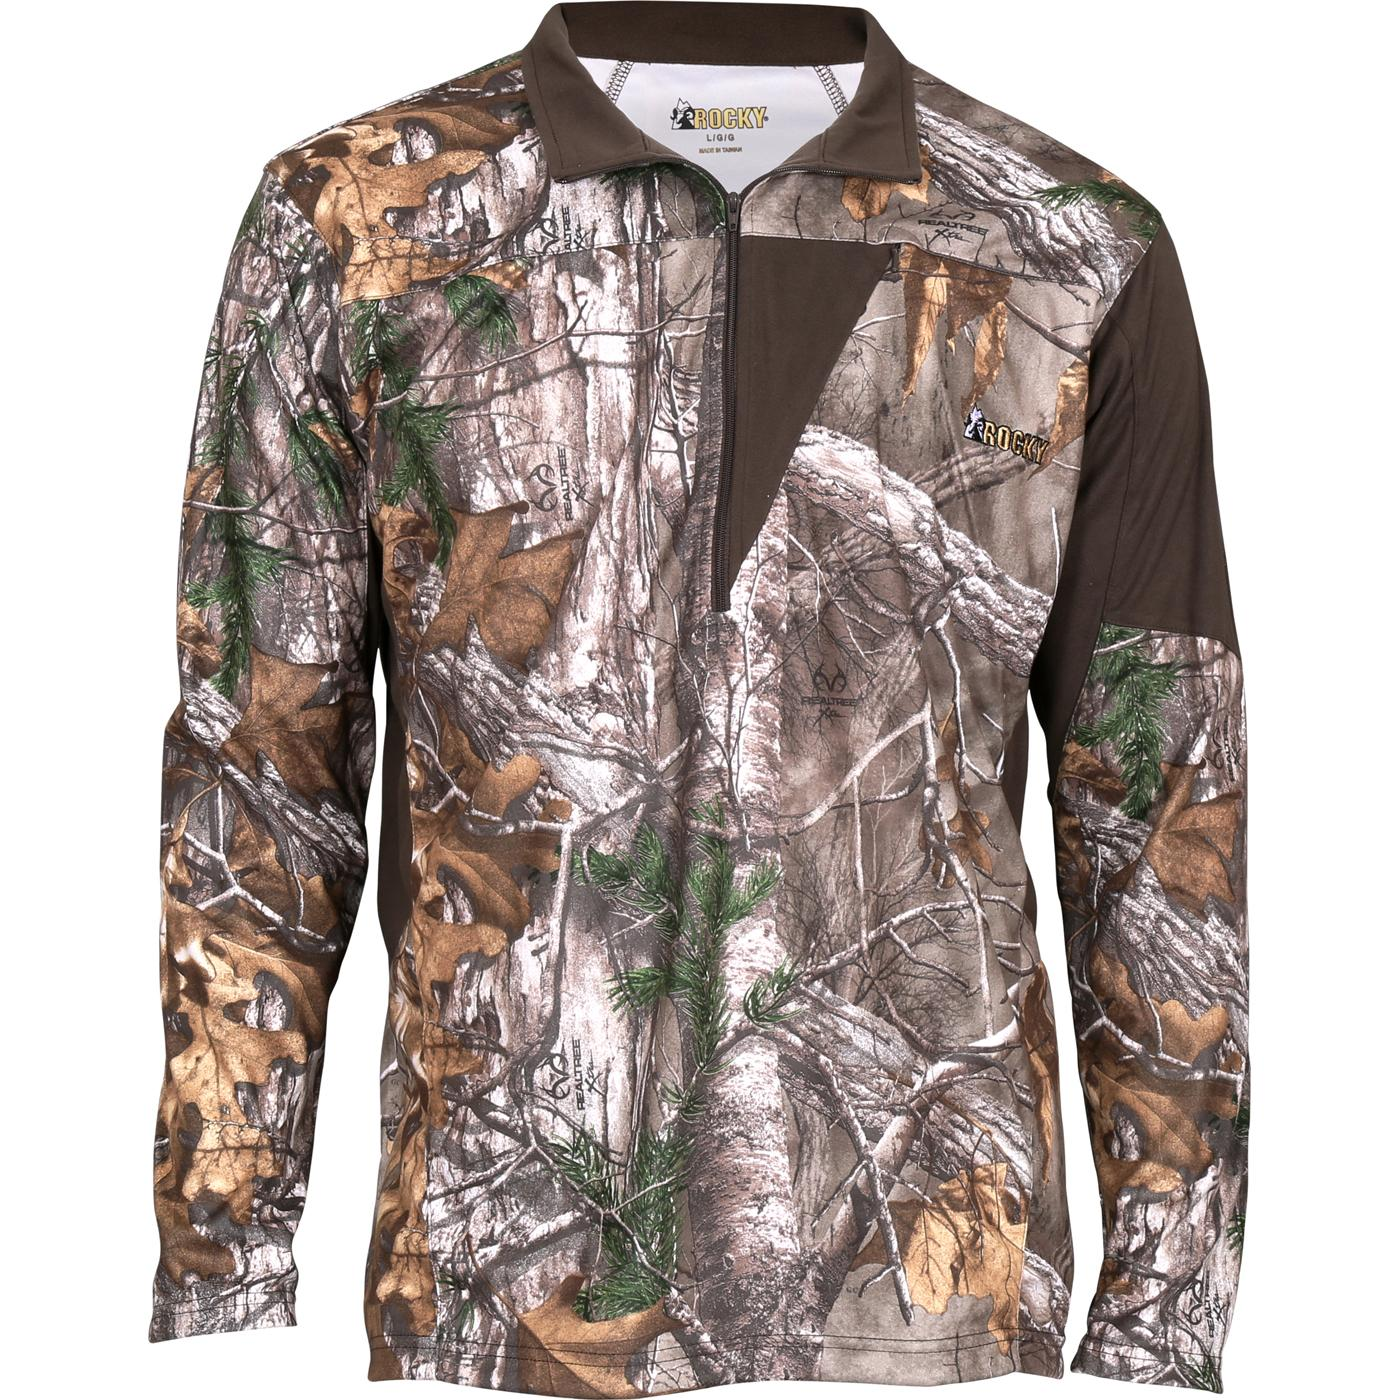 8db3b4713d43c Rocky SilentHunter men's 1/4 zip camouflage shirt, 600546